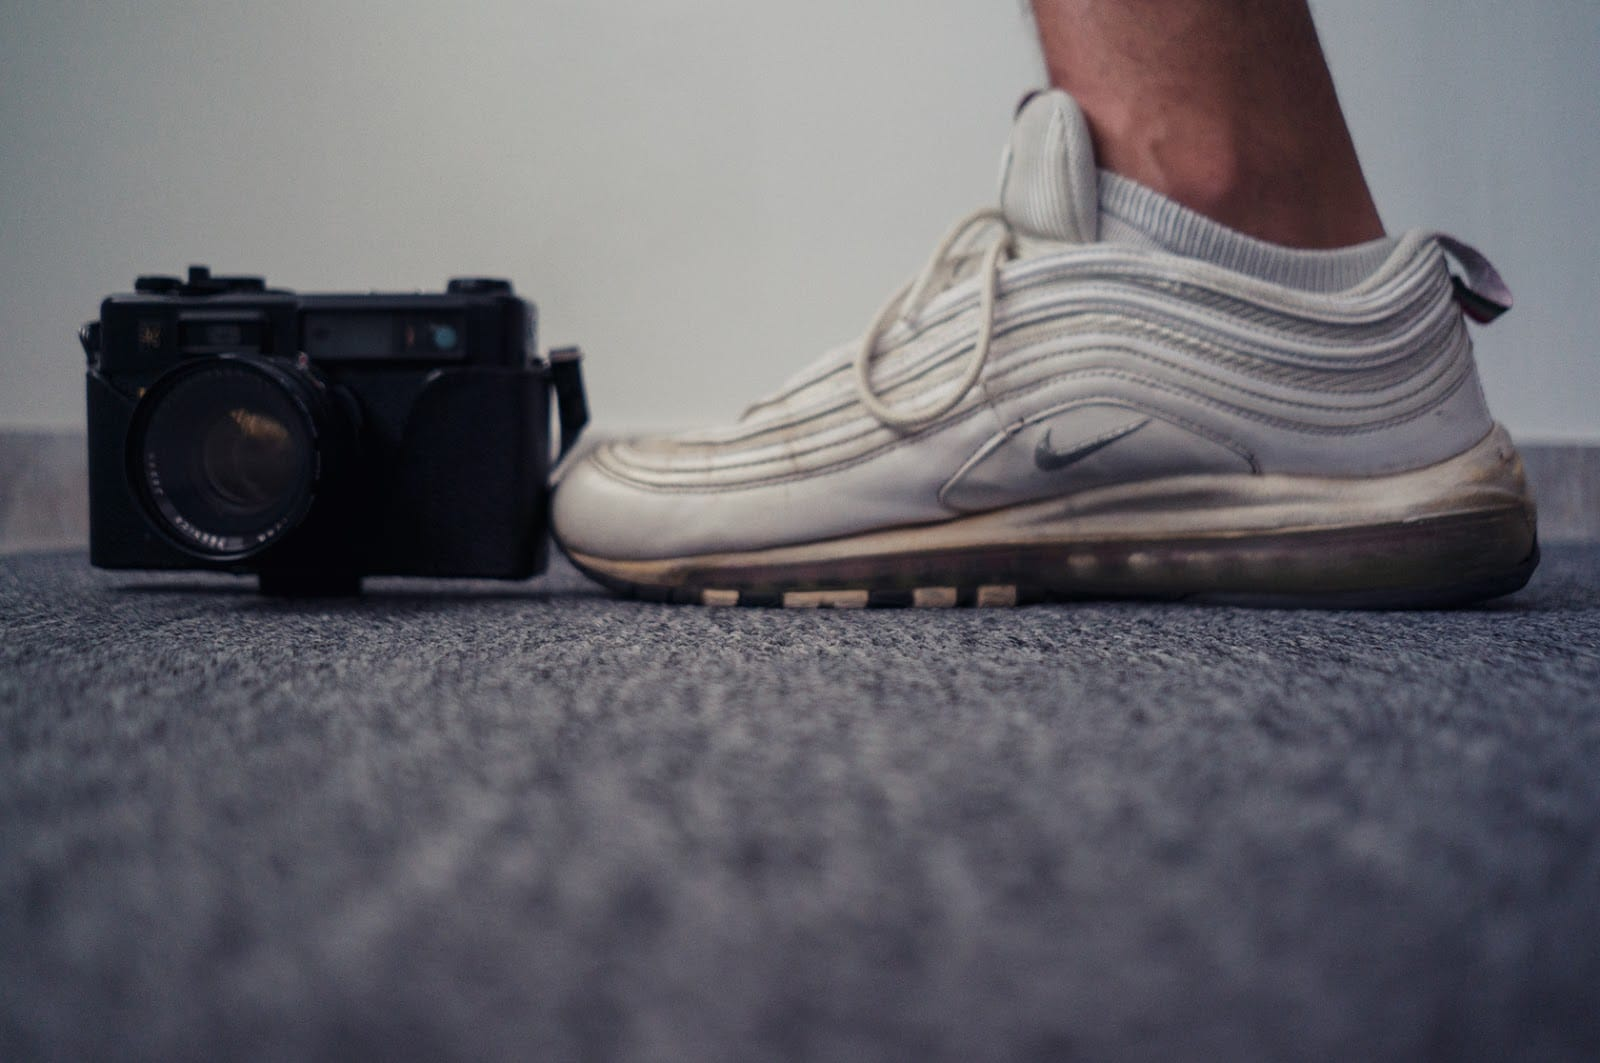 A camera and a shoe